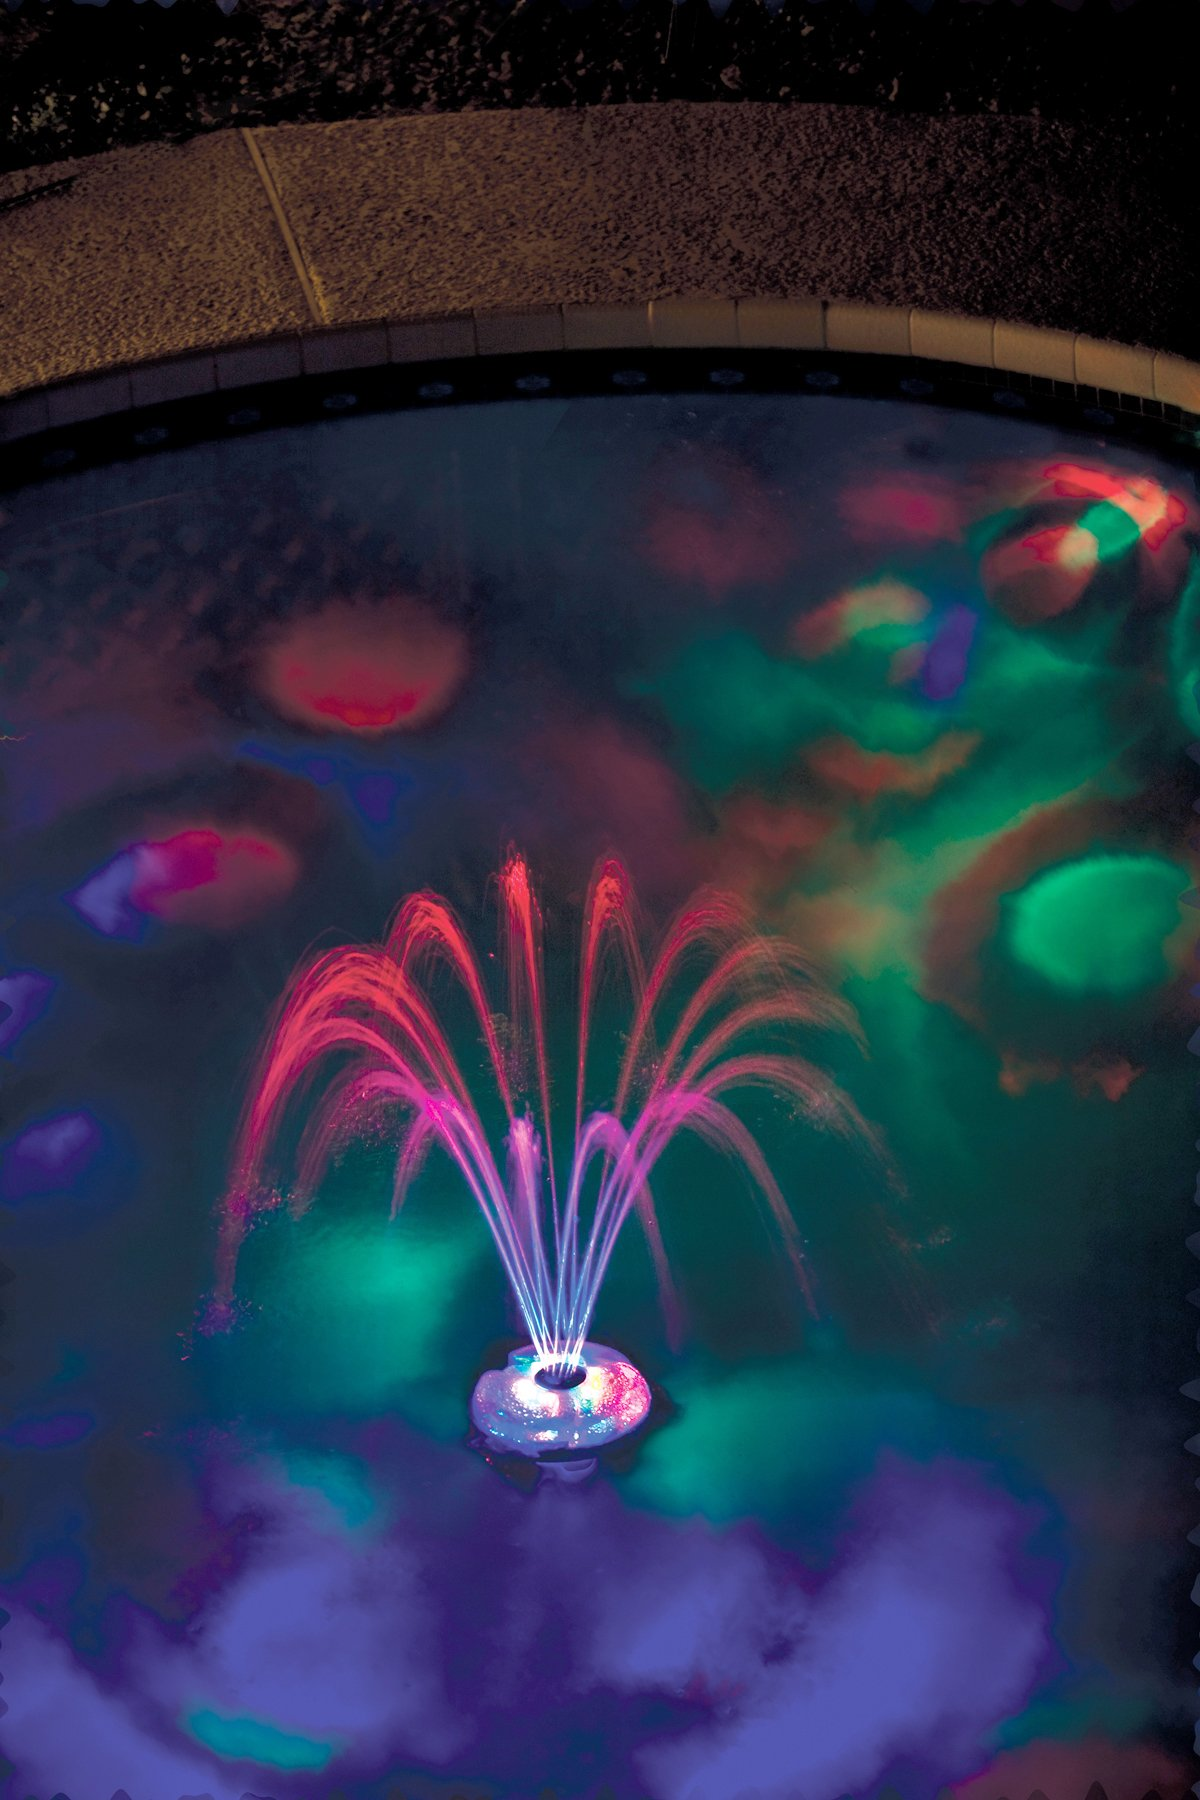 GAME 3567 Fountain Underwater Light Show, 6.9 x 6.9 x 4.4 inches, Blue by GAME